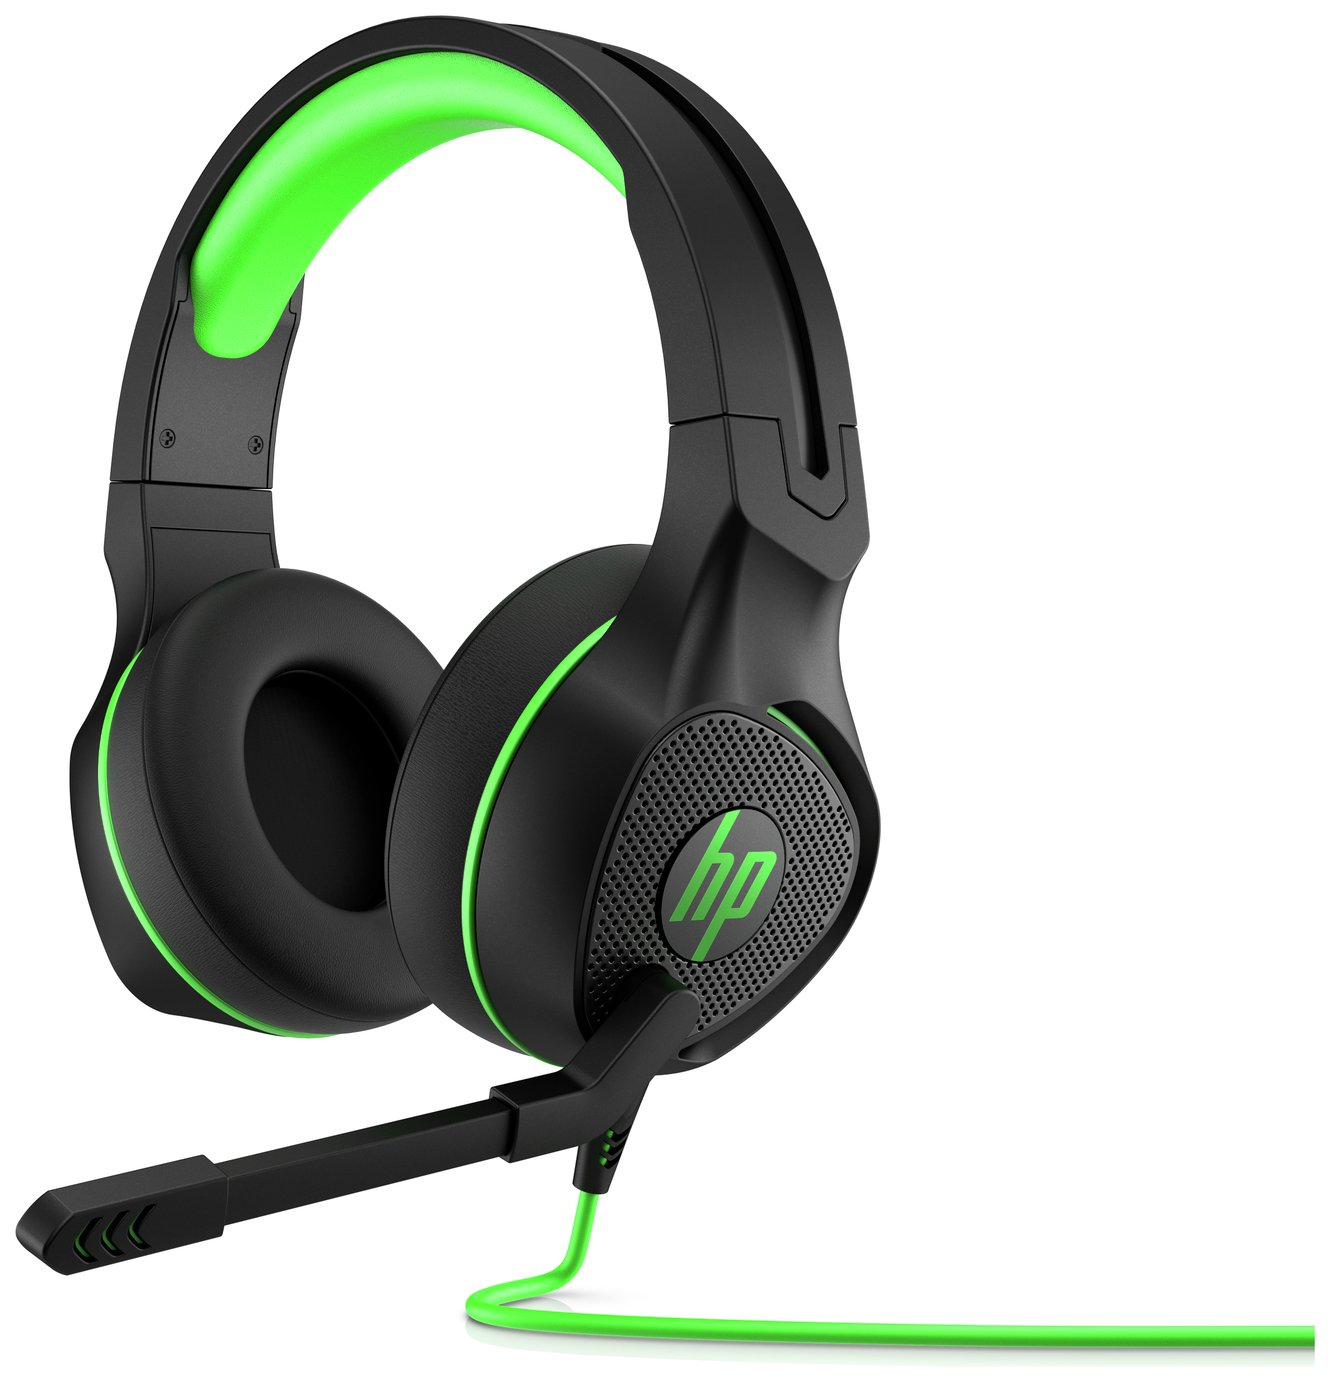 HP Pavilion 400 Gaming Headset - Green from HP